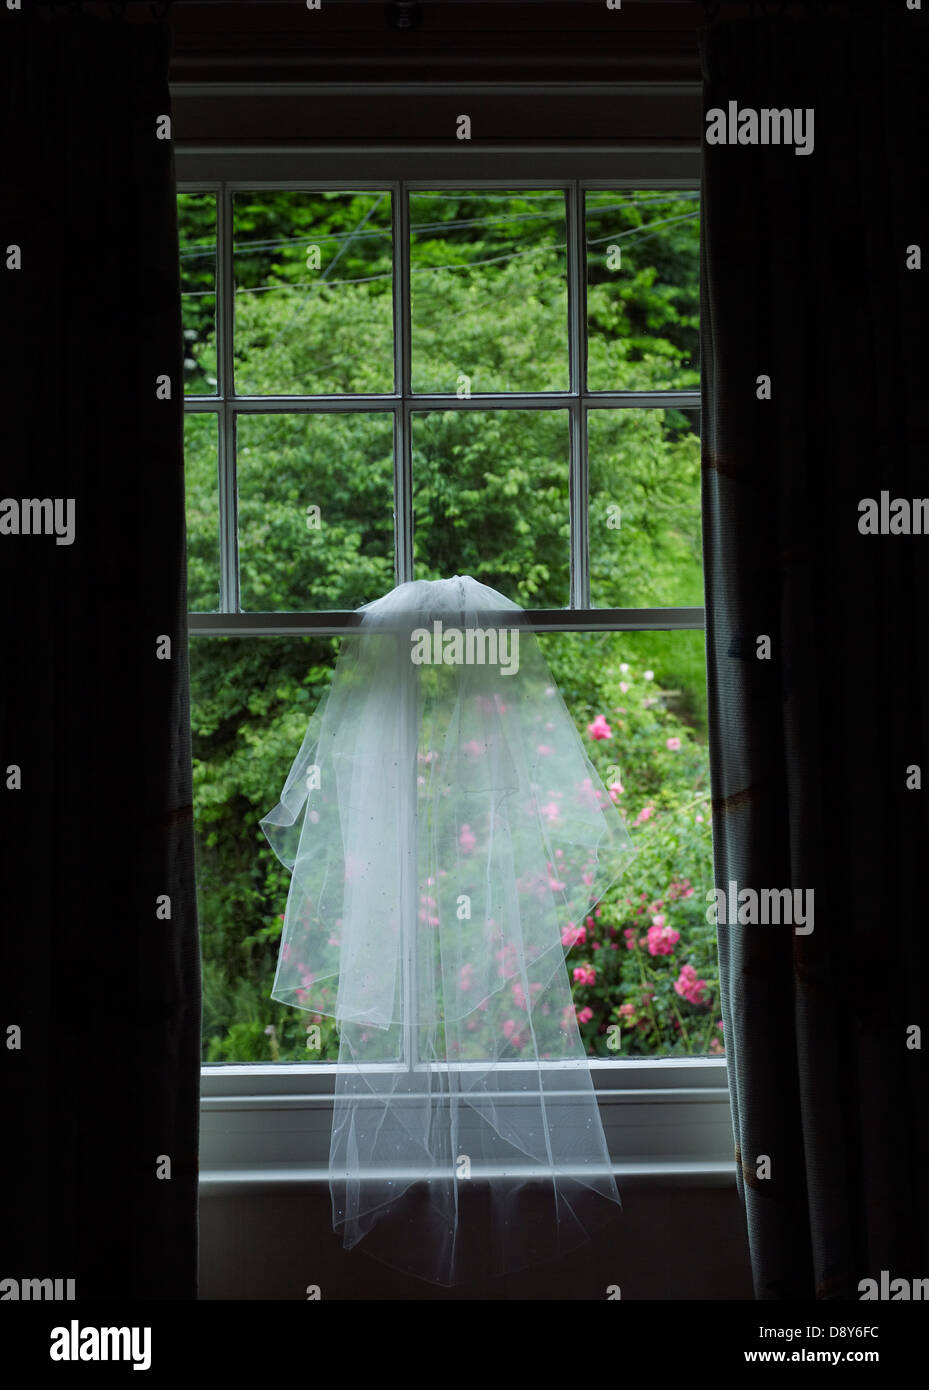 A wedding veil hung from a window overlooking a green garden. - Stock Image